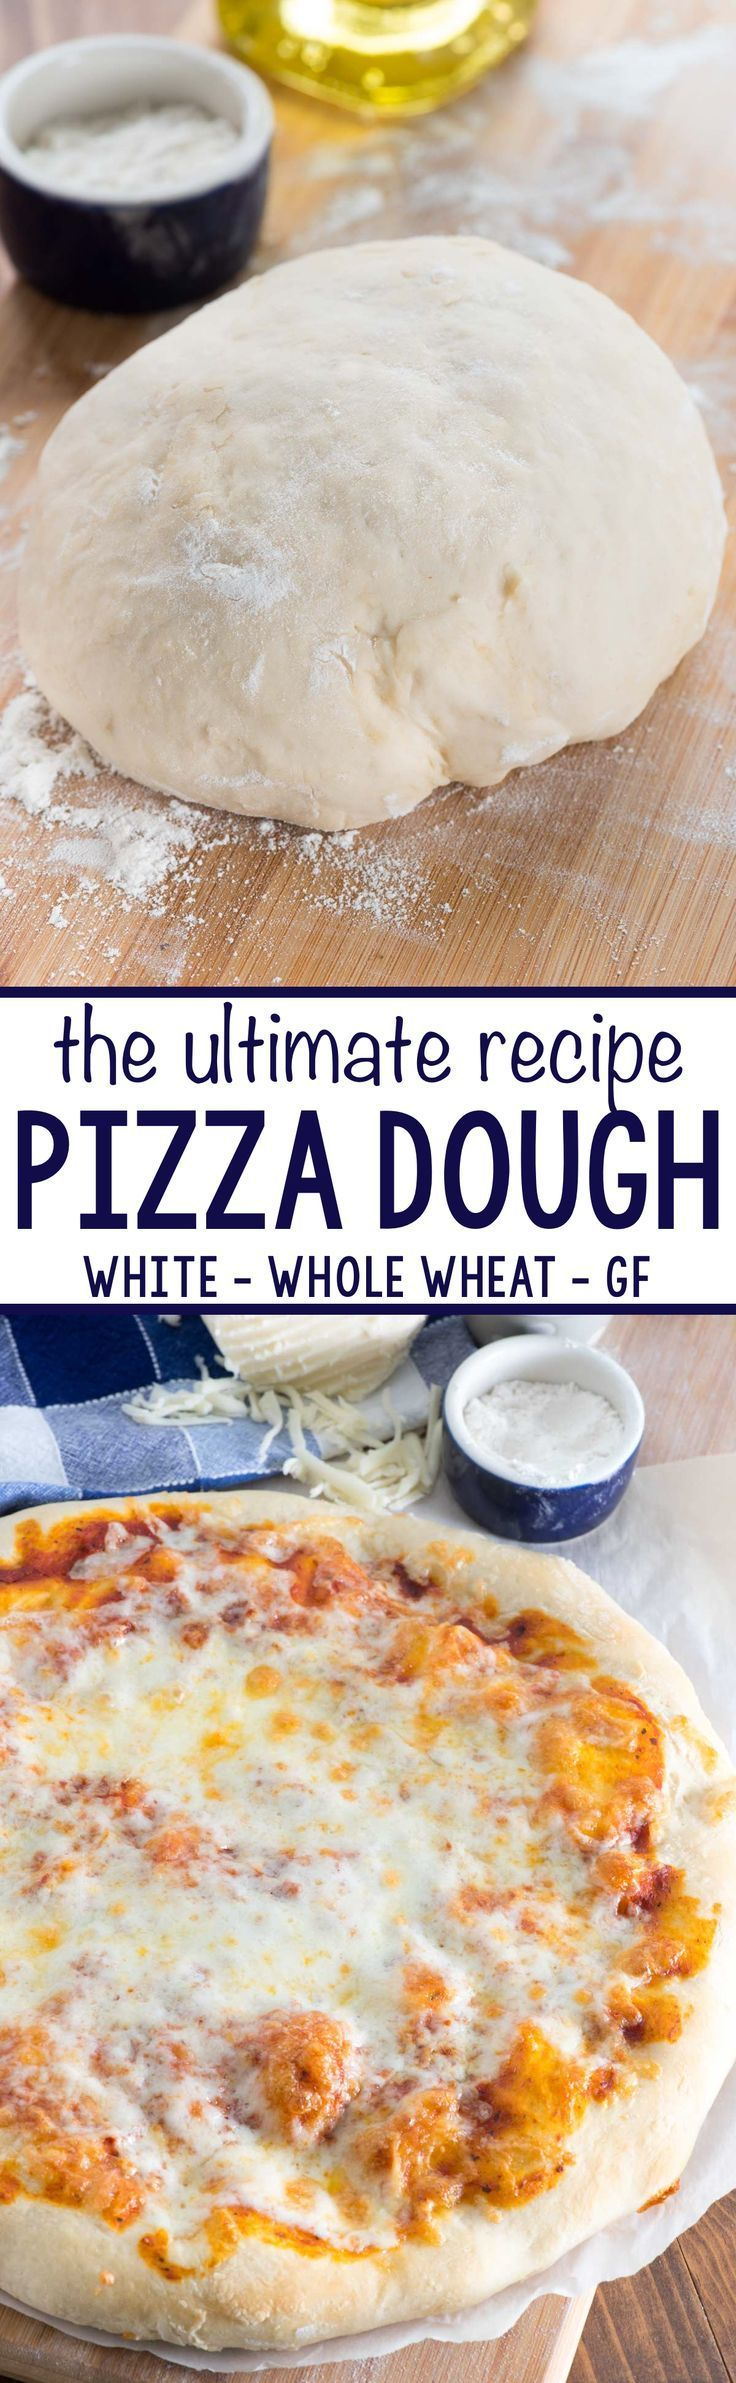 The ULTIMATE Pizza Dough Recipe - this easy pizza dough makes the BEST soft pizza crust. Make white, whole wheat, or even gluten free pizza with this recipe.